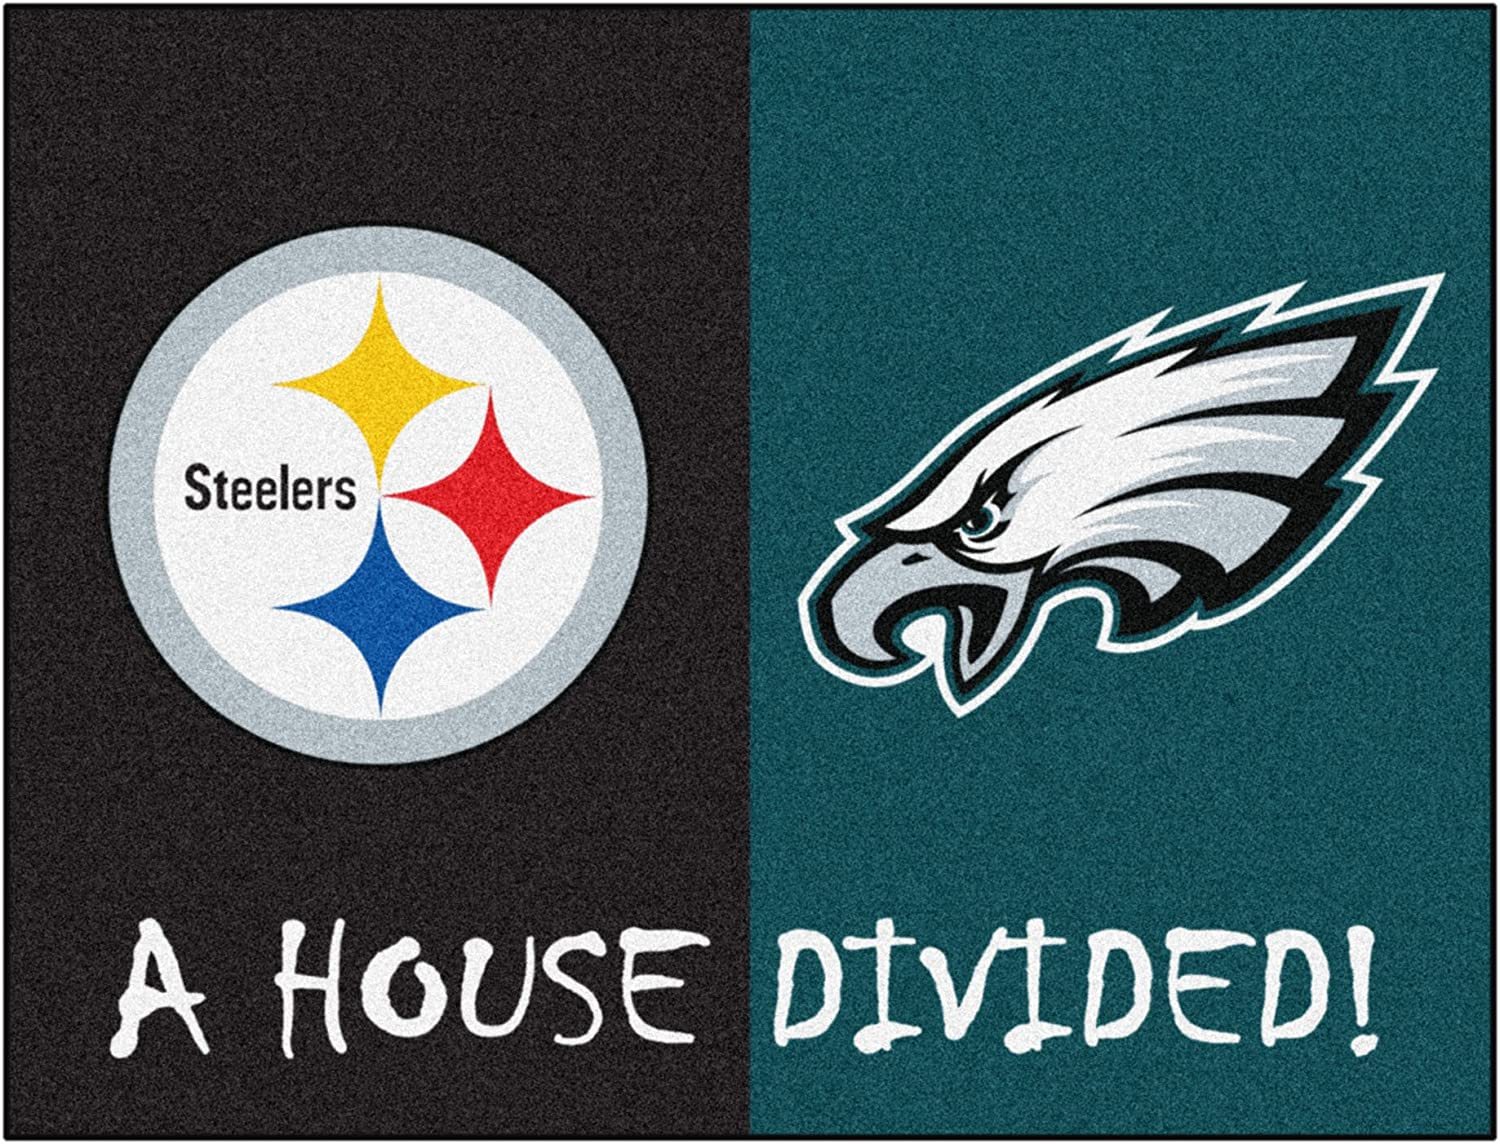 FANMATS 17113 NFL House Divided Steelers/Eagles House Divided Mat